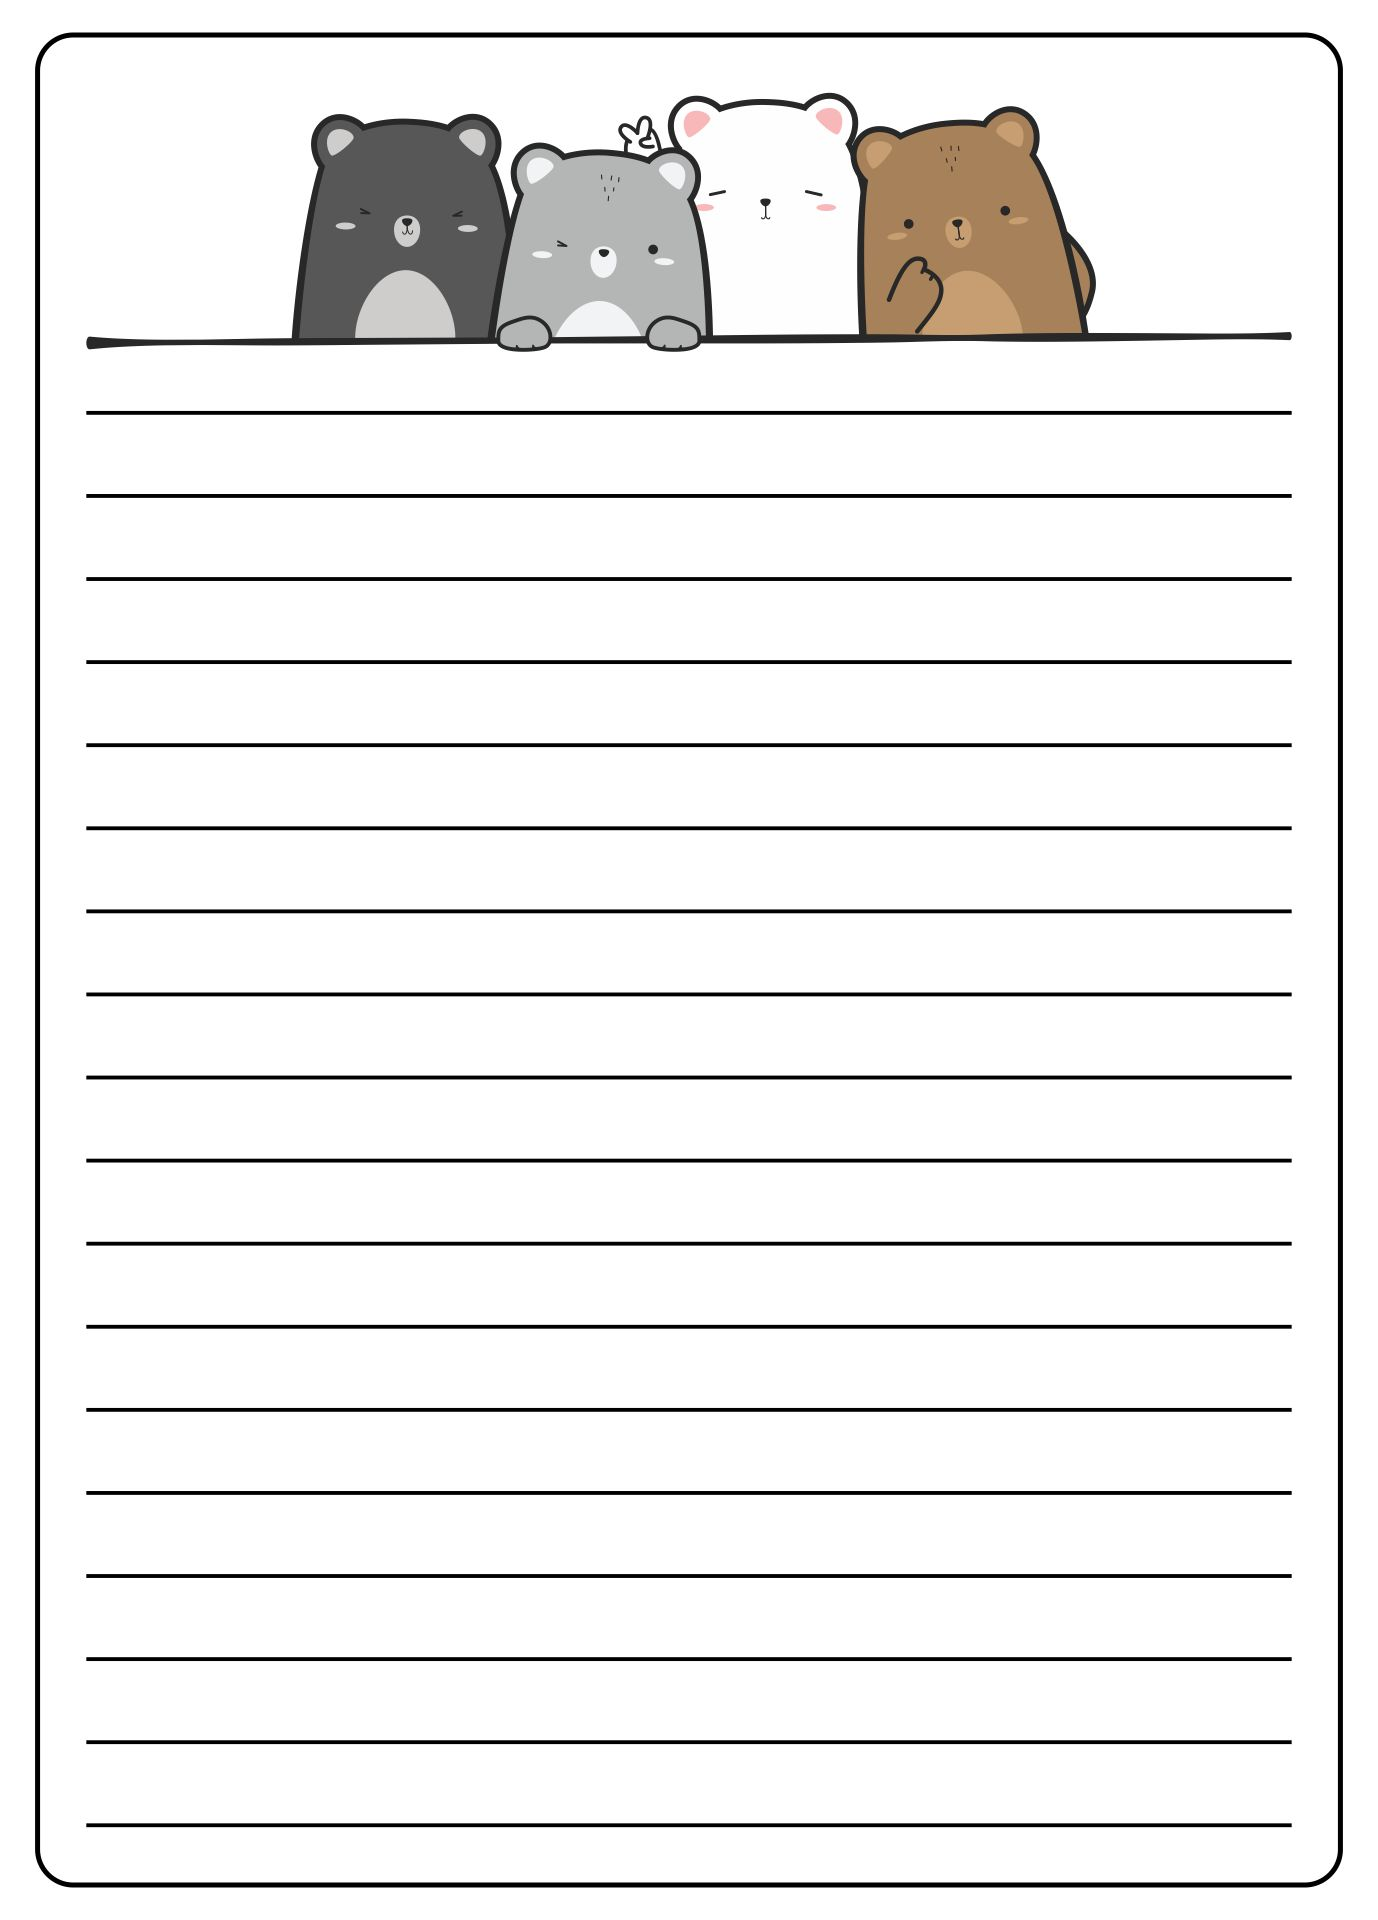 Printable Lined Paper to Print